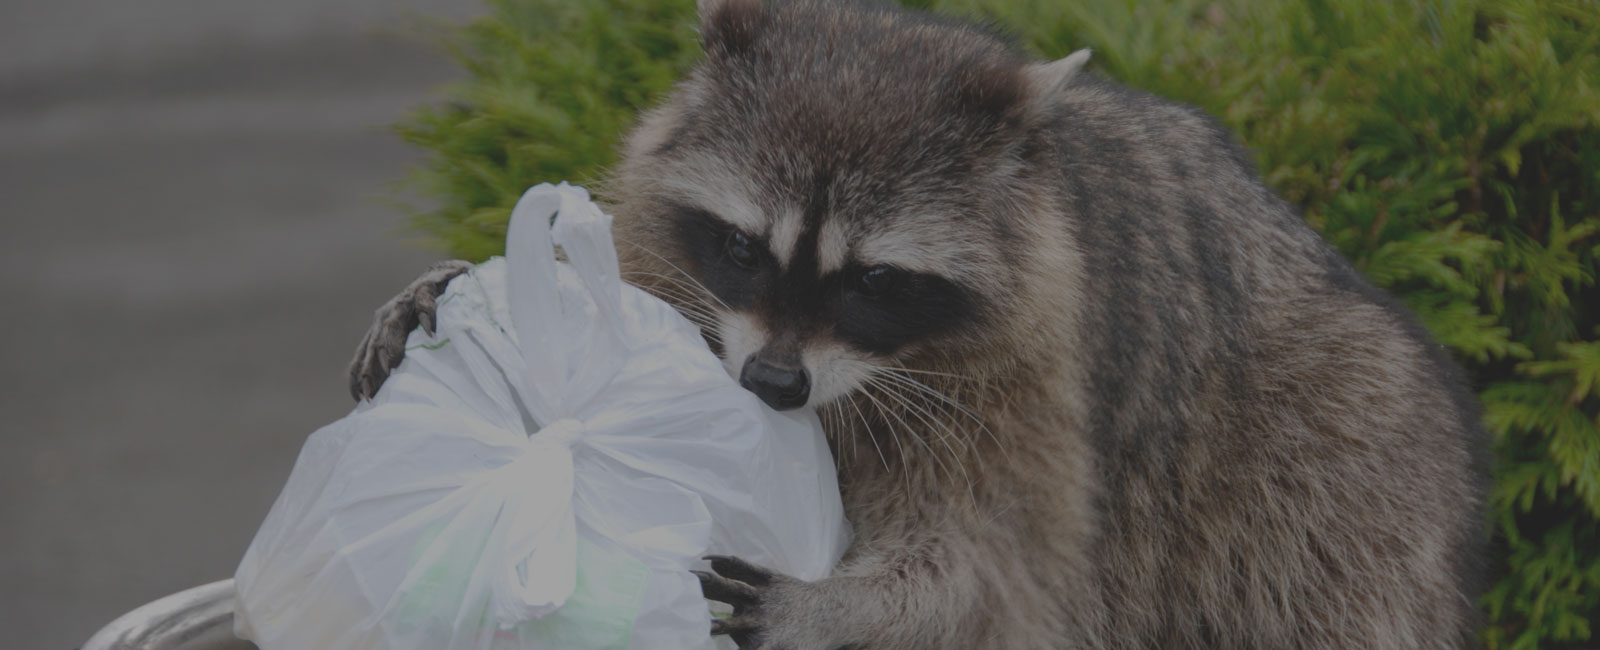 Racoon in garbage